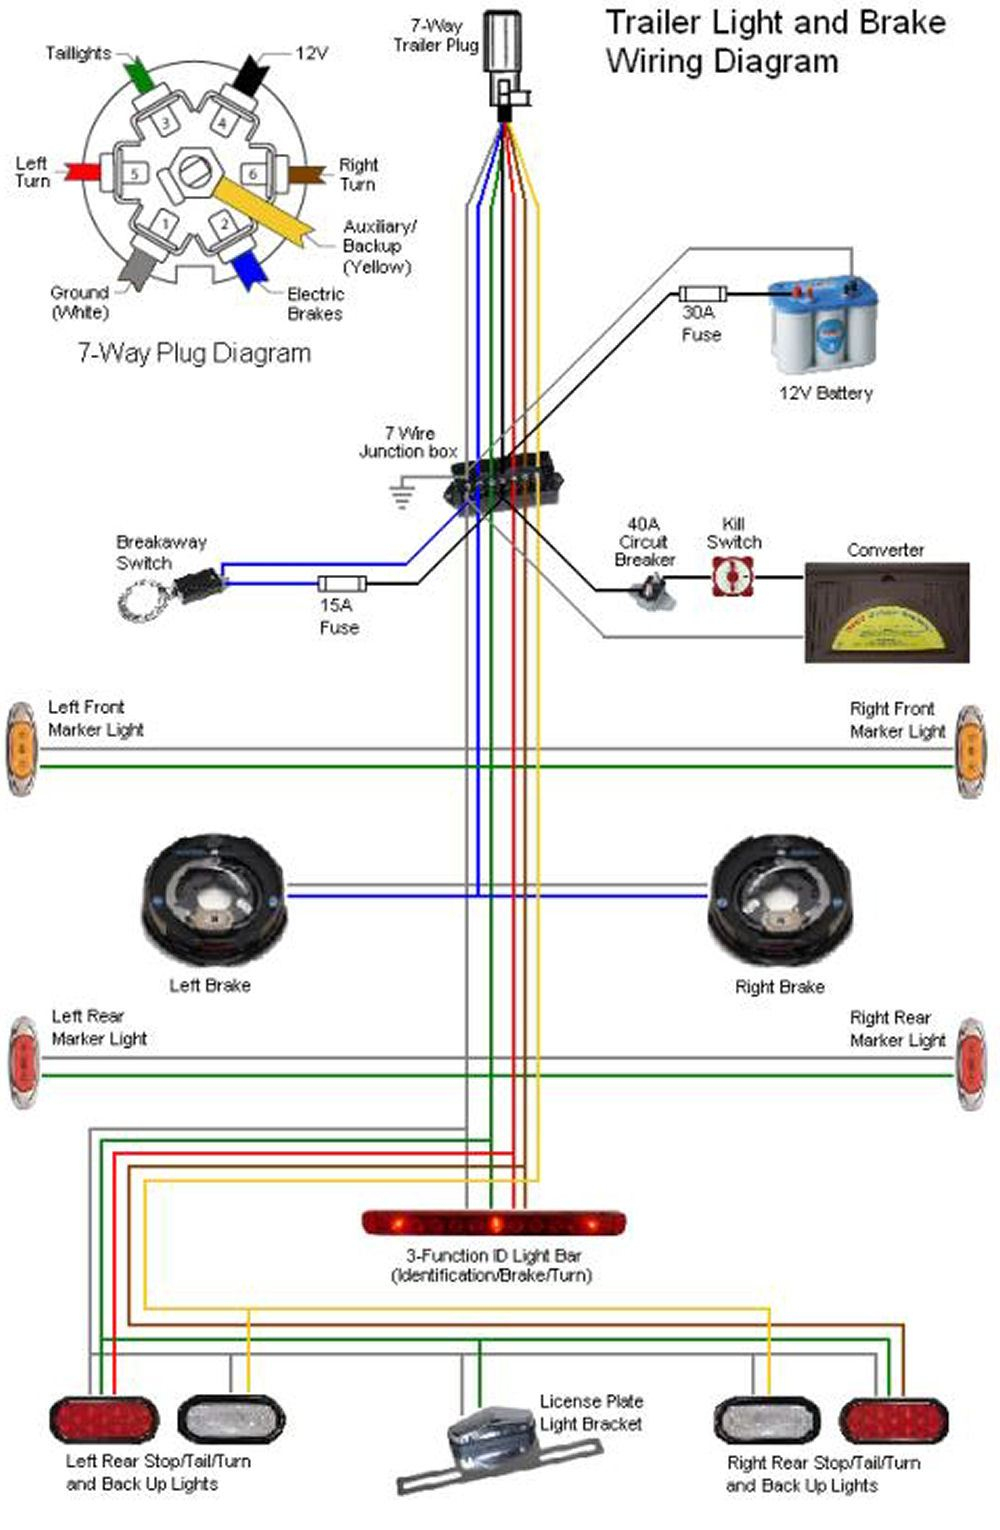 Way Trailer Plug Wiring Diagram Gmc Recent Trailer Brake Controller - Wiring Diagram For Trailer With Brakes